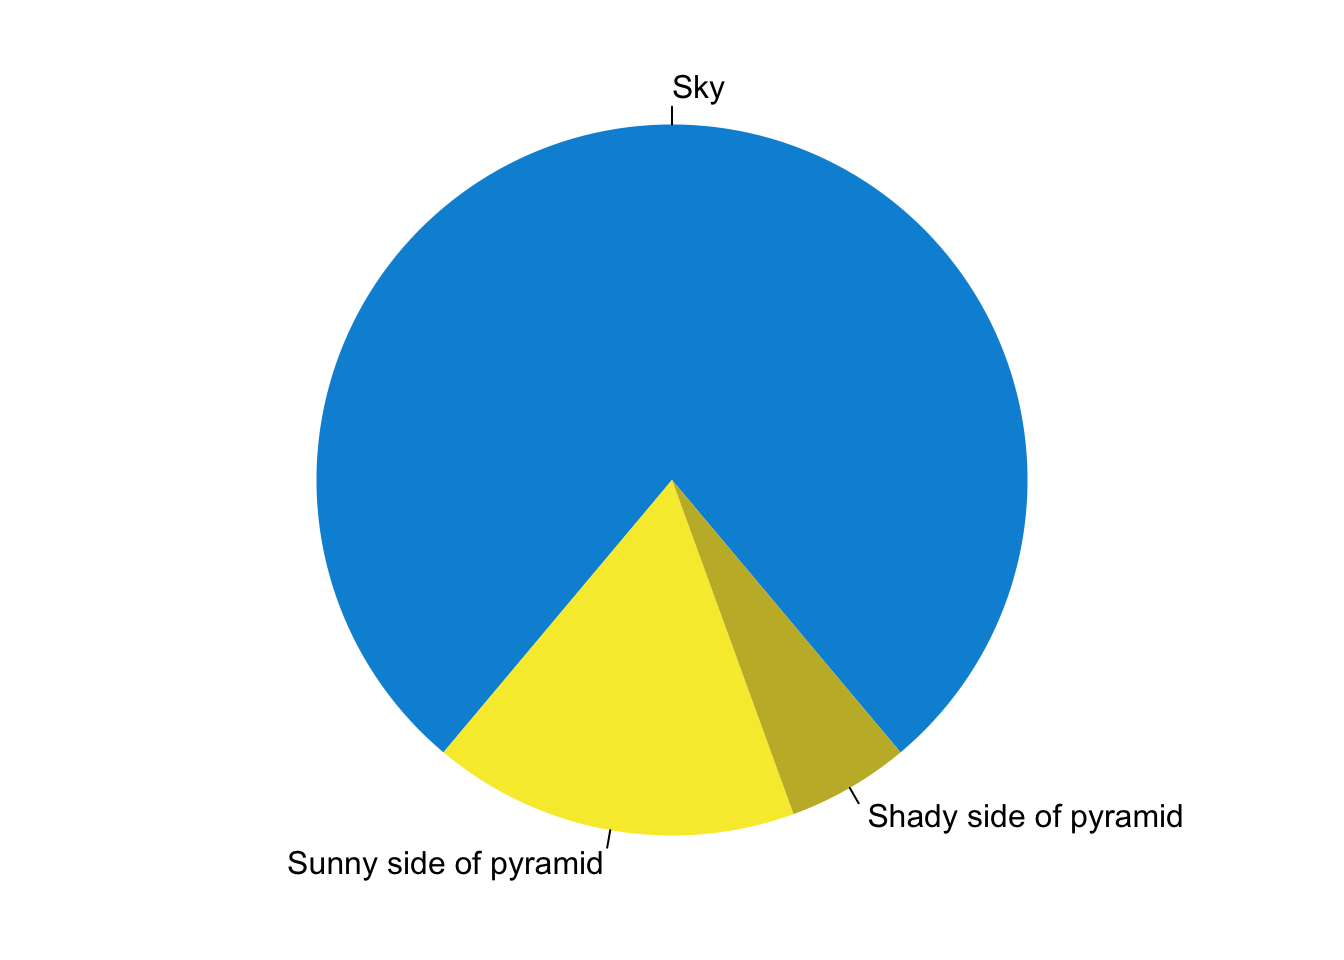 A fancy pie chart.